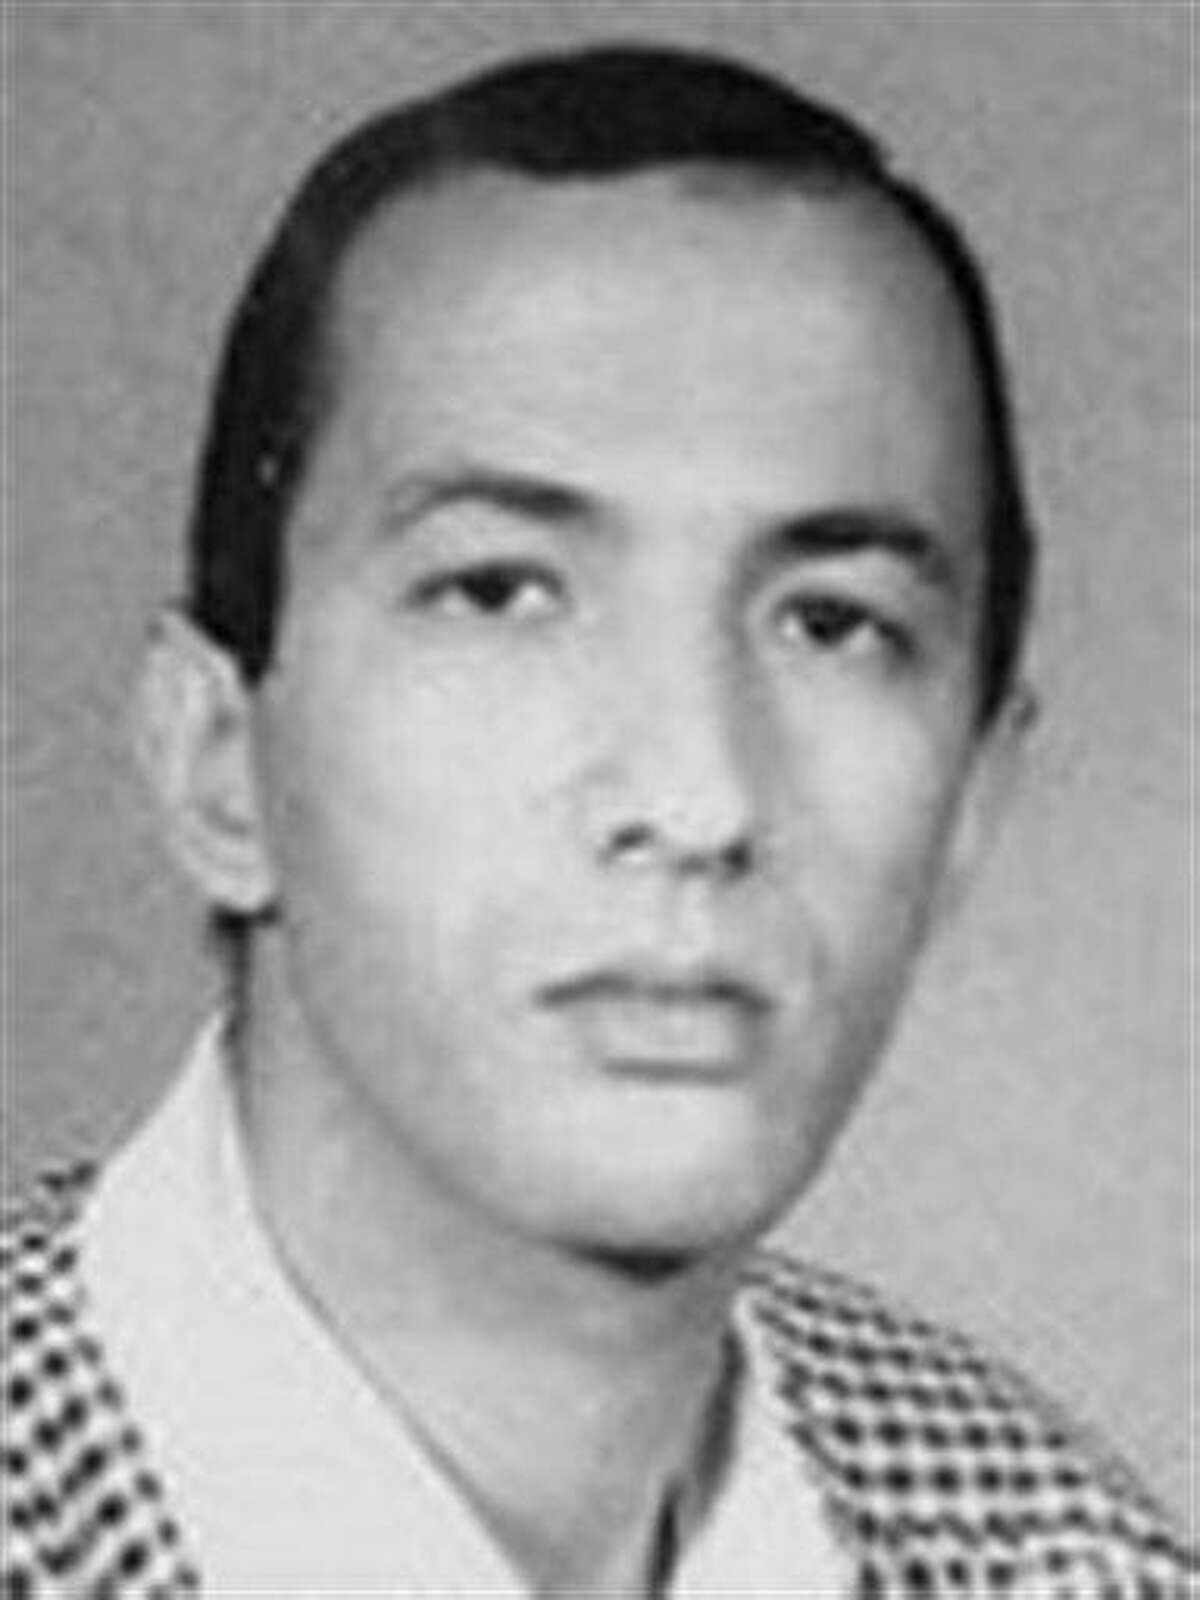 This image provided by the FBI shows an undated image of Saif al-Adel also known as Muhamad Ibrahim Makkawi, Seif Al Adel, Ibrahim Al-Madani. He was arrested Wednesday at Cairo Airport but he has denied the link and says it was a case of mistaken identity. Saif Al-Adel is wanted by the FBI in connection with the Aug. 7, 1998, bombings of the United States Embassies in Dar es Salaam, Tanzania, and Nairobi, Kenya. Associated Press